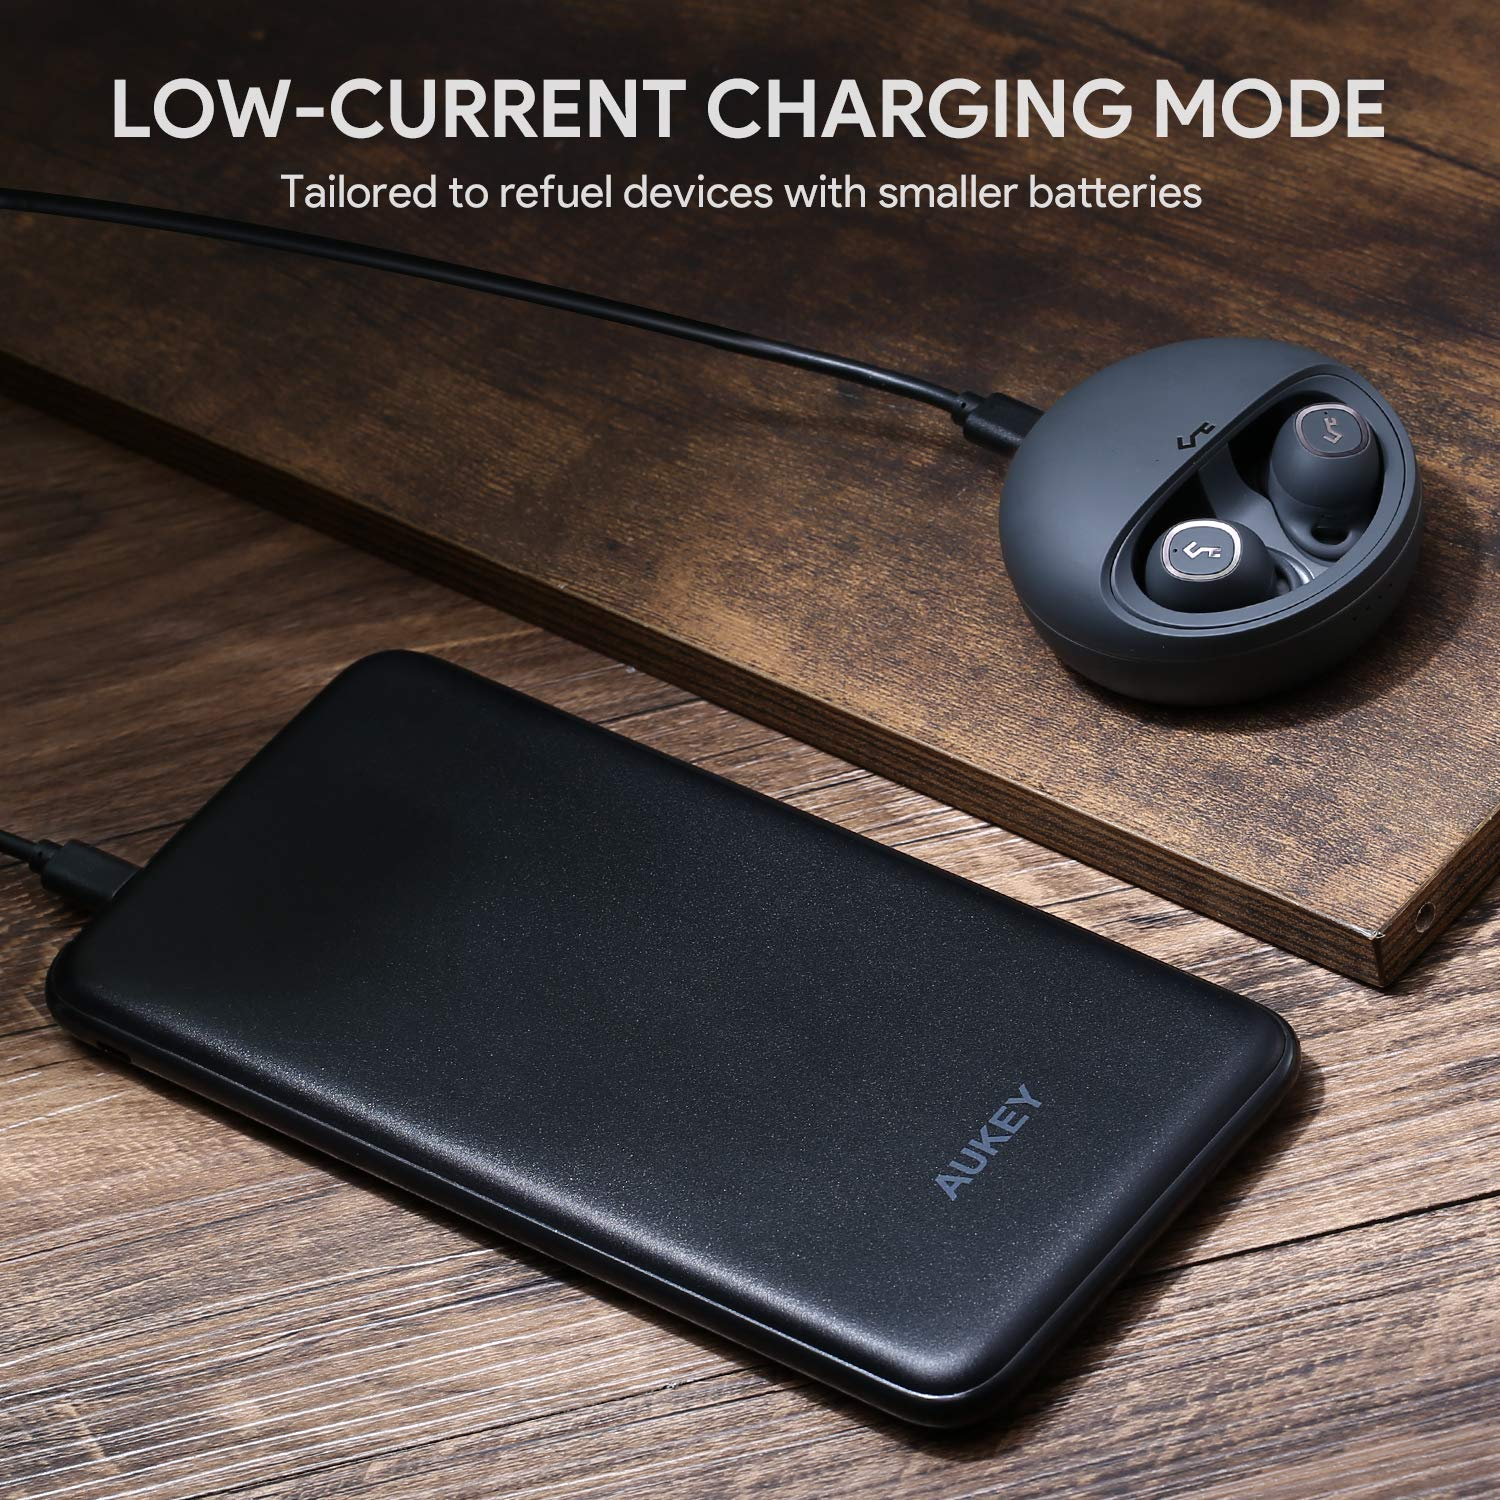 AUKEY Power Delivery Power Bank 20000mAh, USB C Portable Charger with 18W PD and Quick Charge 3.0 Battery Pack, Compatible iPhone Xs/XR/XS Max, ...